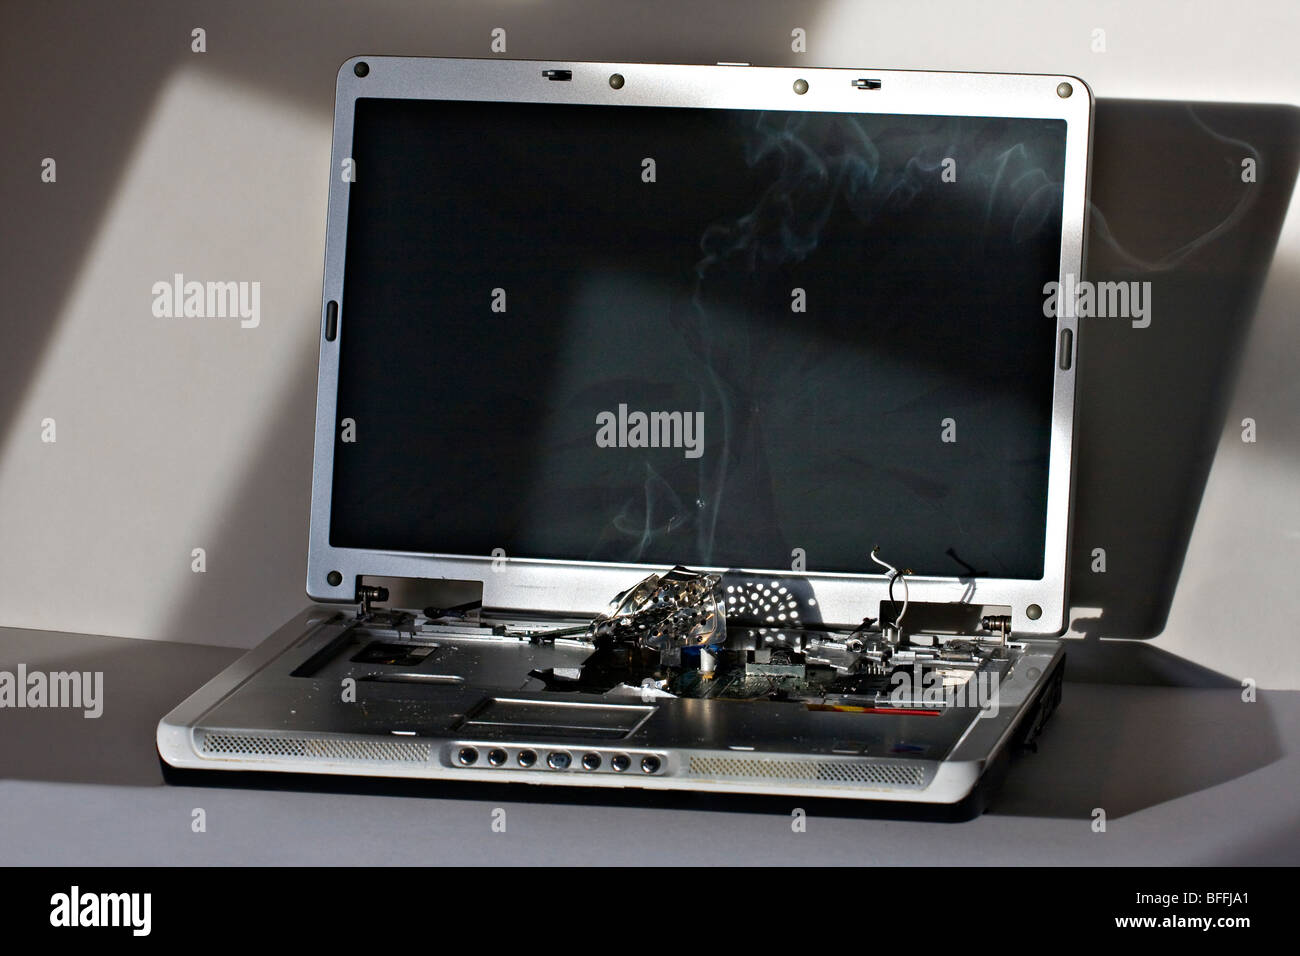 Broken Laptop Computer. Screen cracked with smoking computer components. Stock Photo